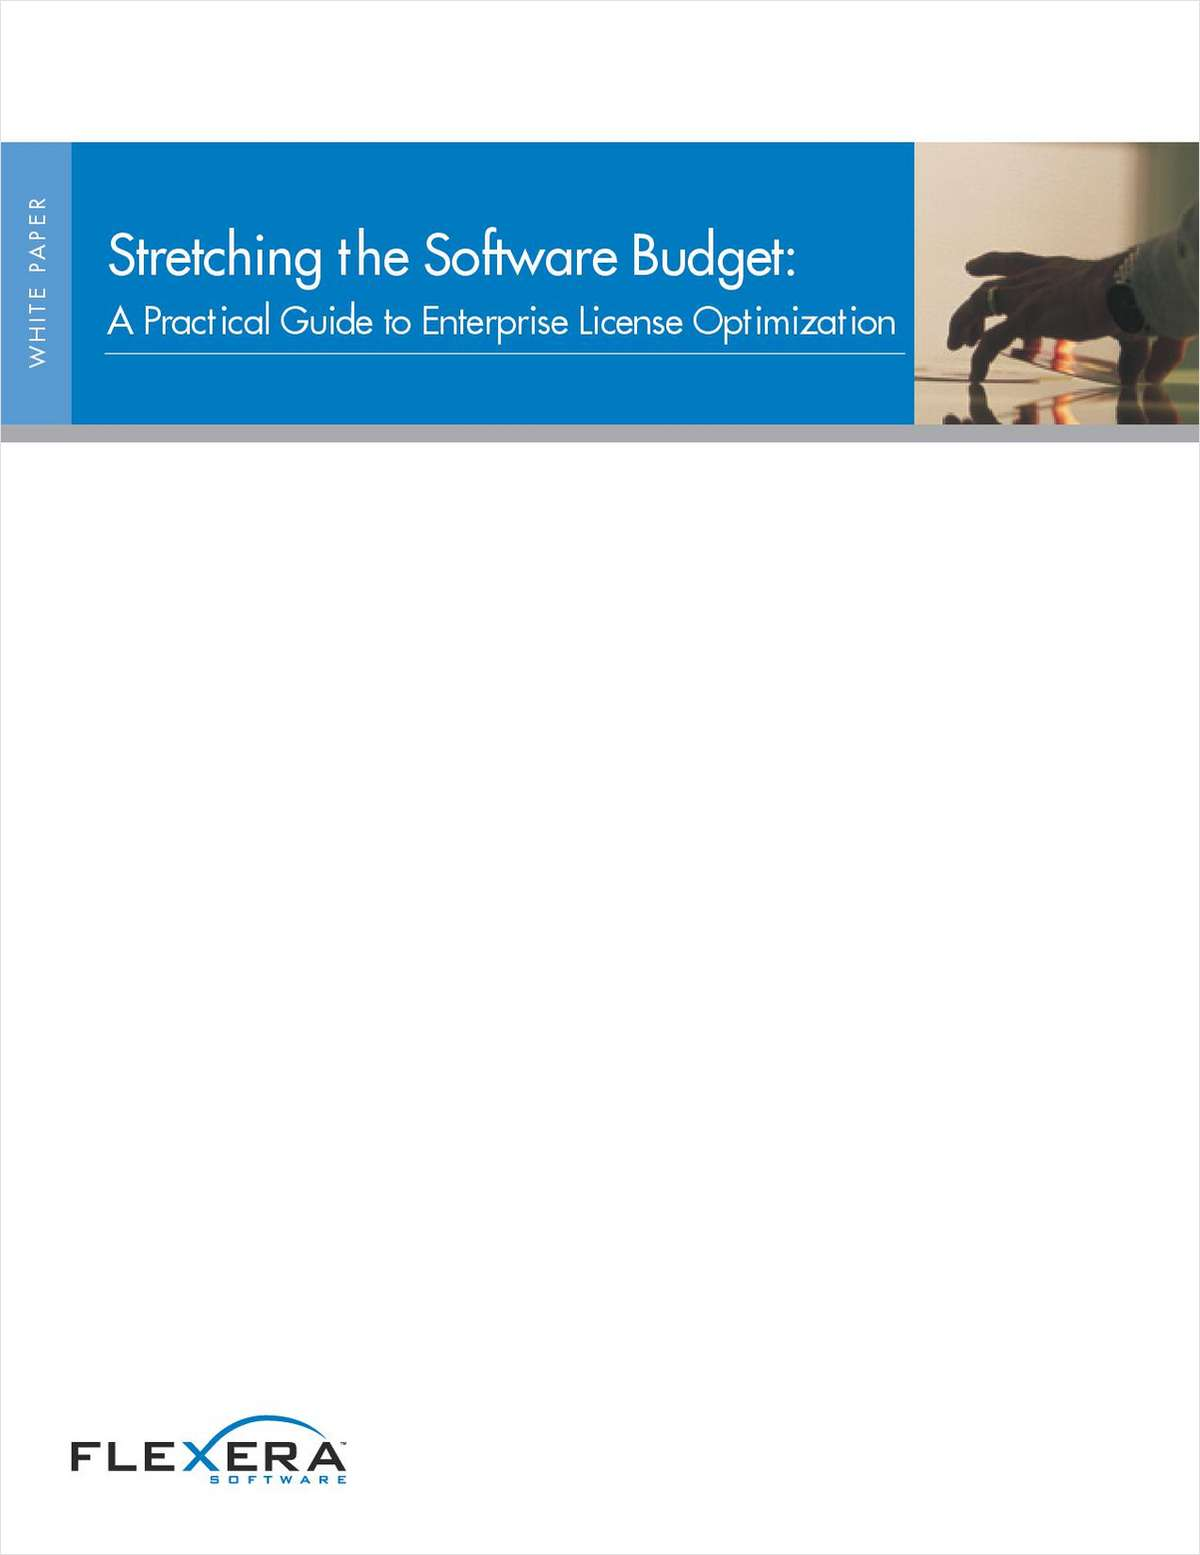 Stretching the Software Budget with Enterprise License Optimization